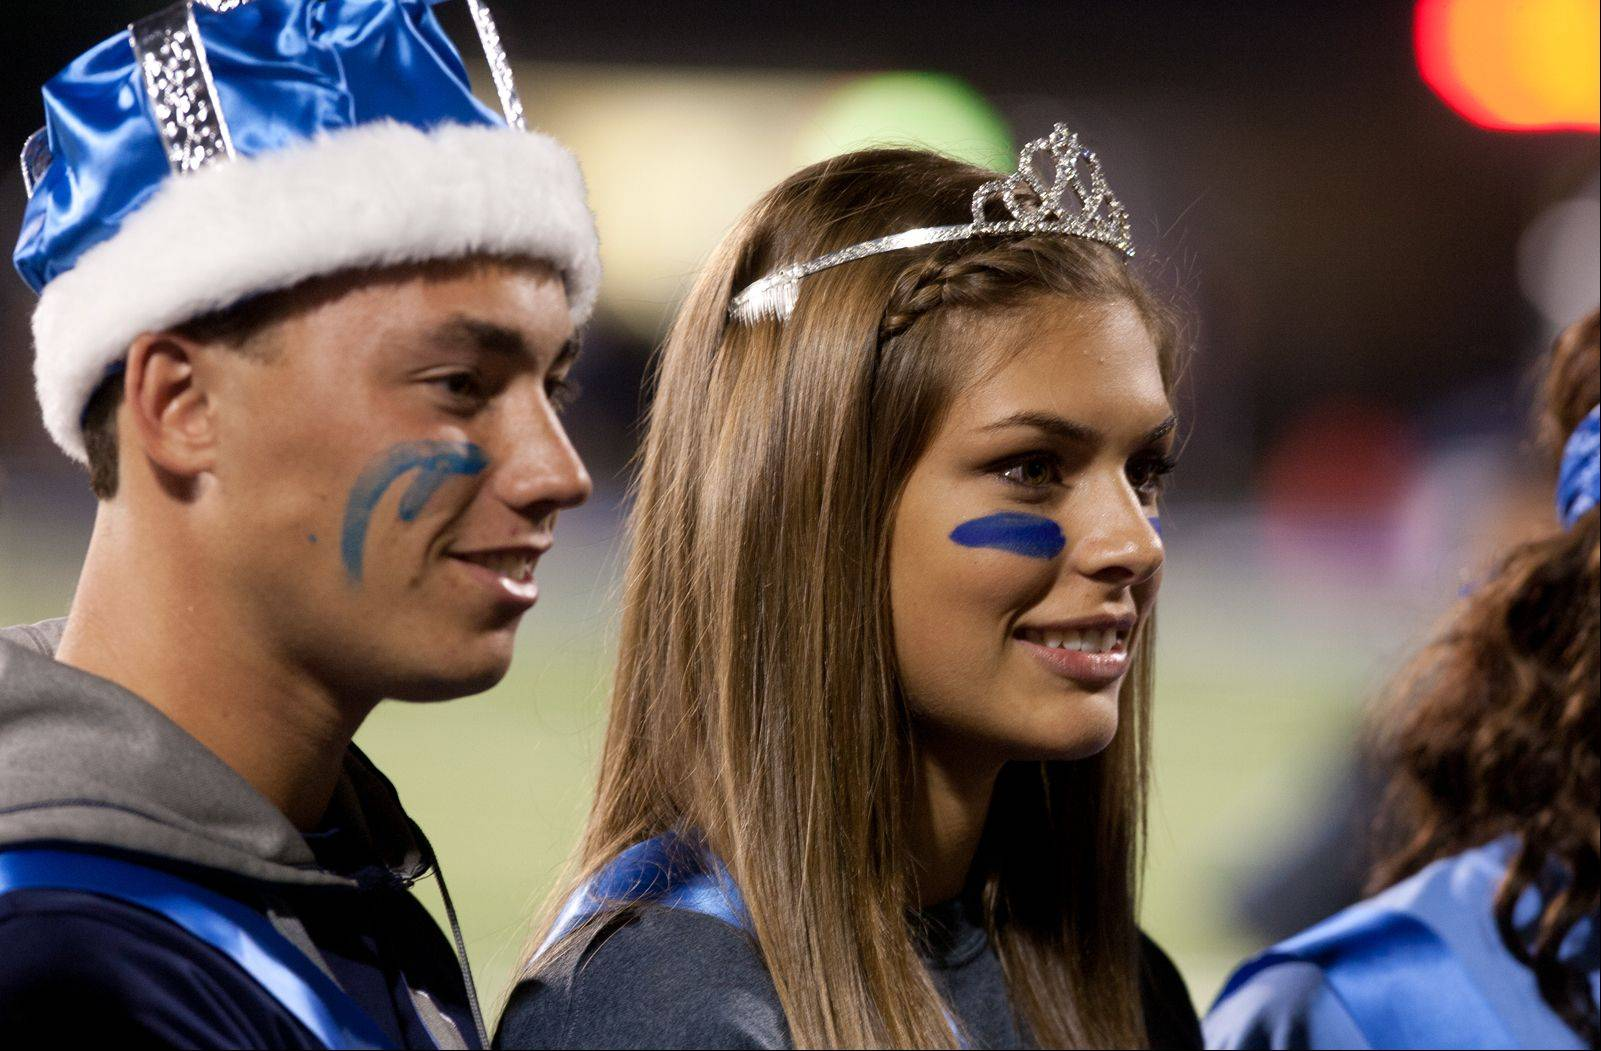 Lake Park Homecoming King Andrew Tau and Homercoming Queen Samantha Green are introduced to the crowd.